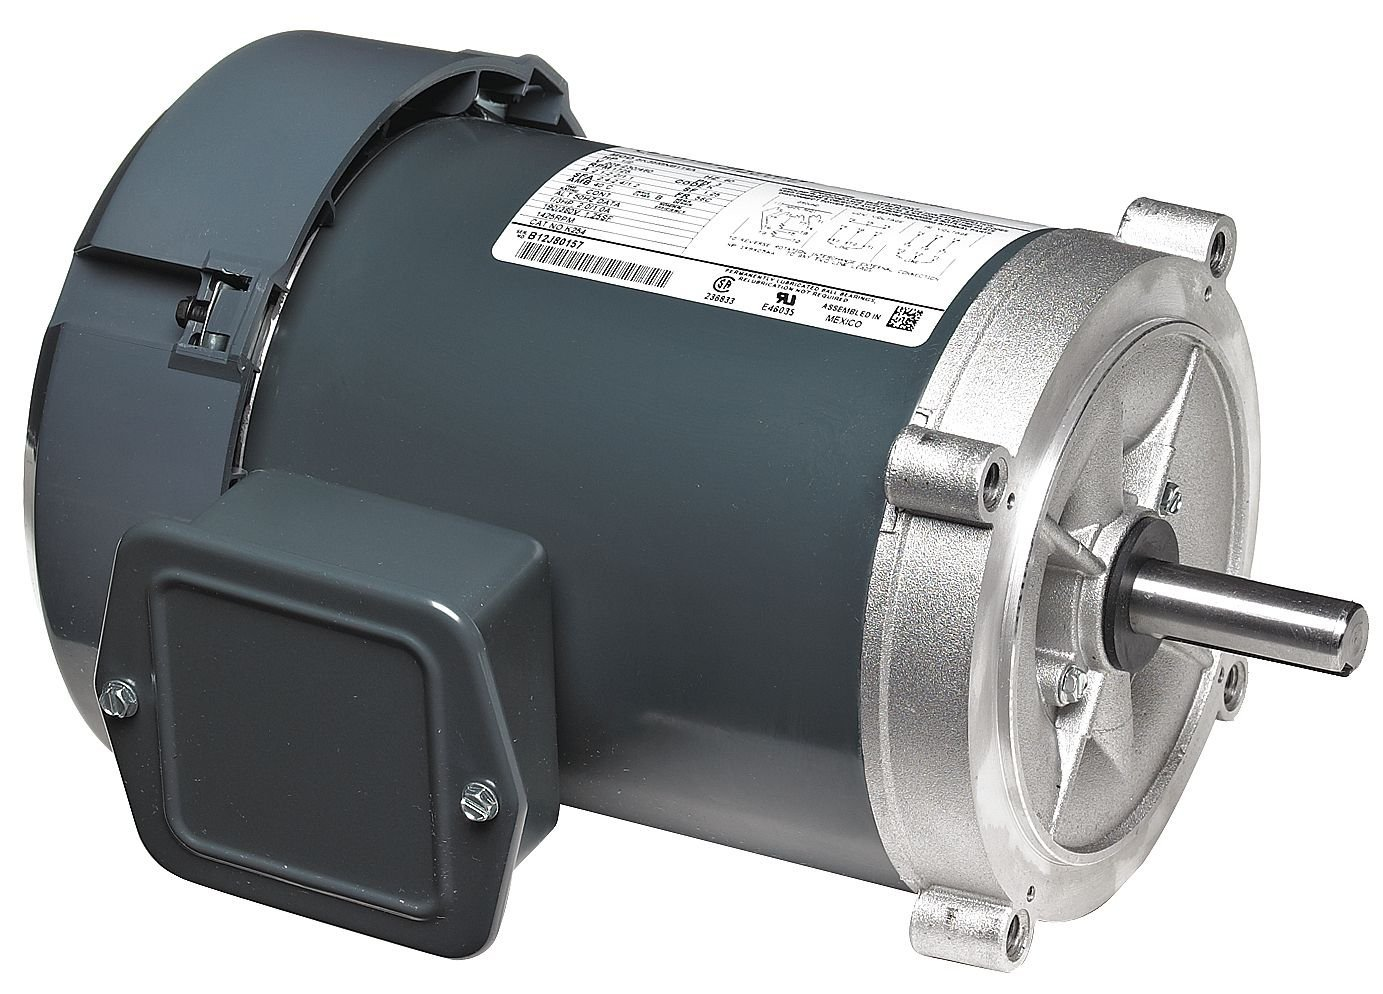 Cheap 3 Phase Electric Motor Find Deals On Marathon Wiring Diagram Get Quotations Regal Beloit 56t34f5321 1 2 Hp